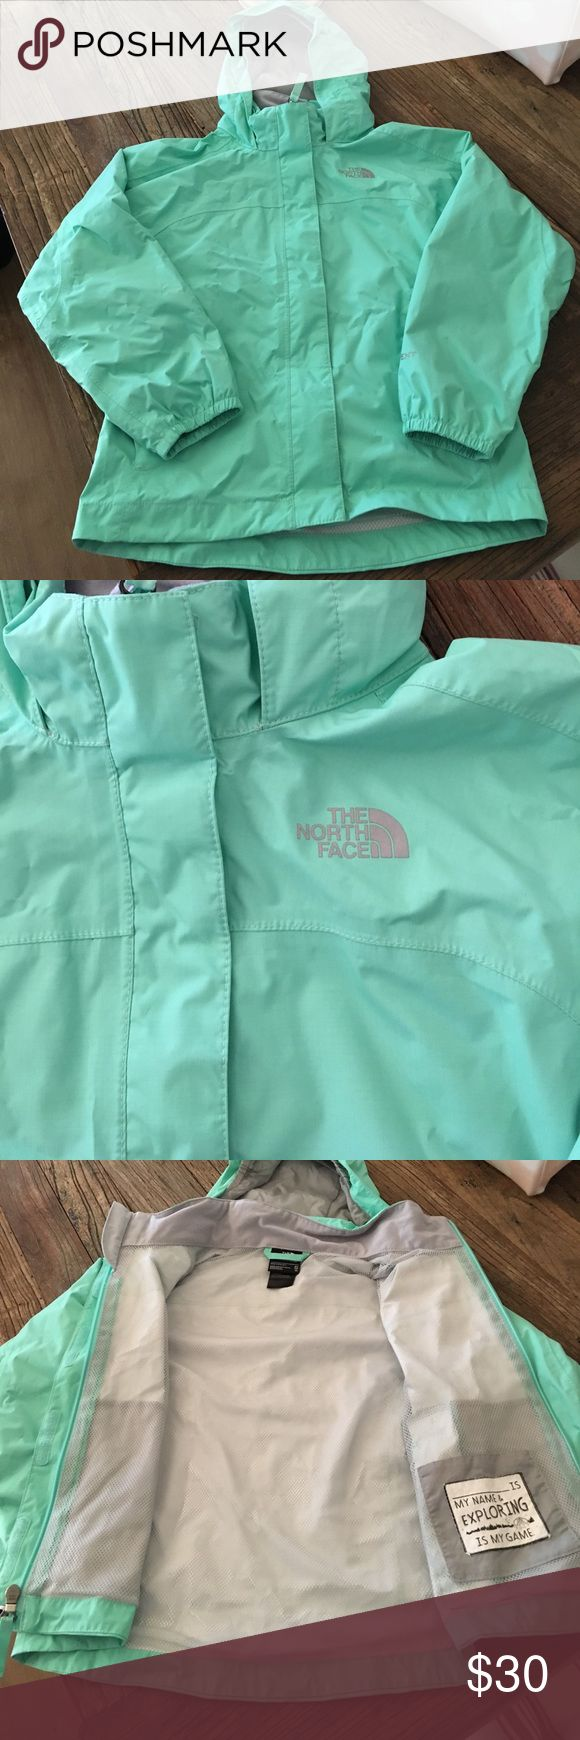 North face kids rain jacket Excellent like new condition, beautiful aqua blue rain jacket. Size 6 xs The North Face Jackets & Coats Raincoats